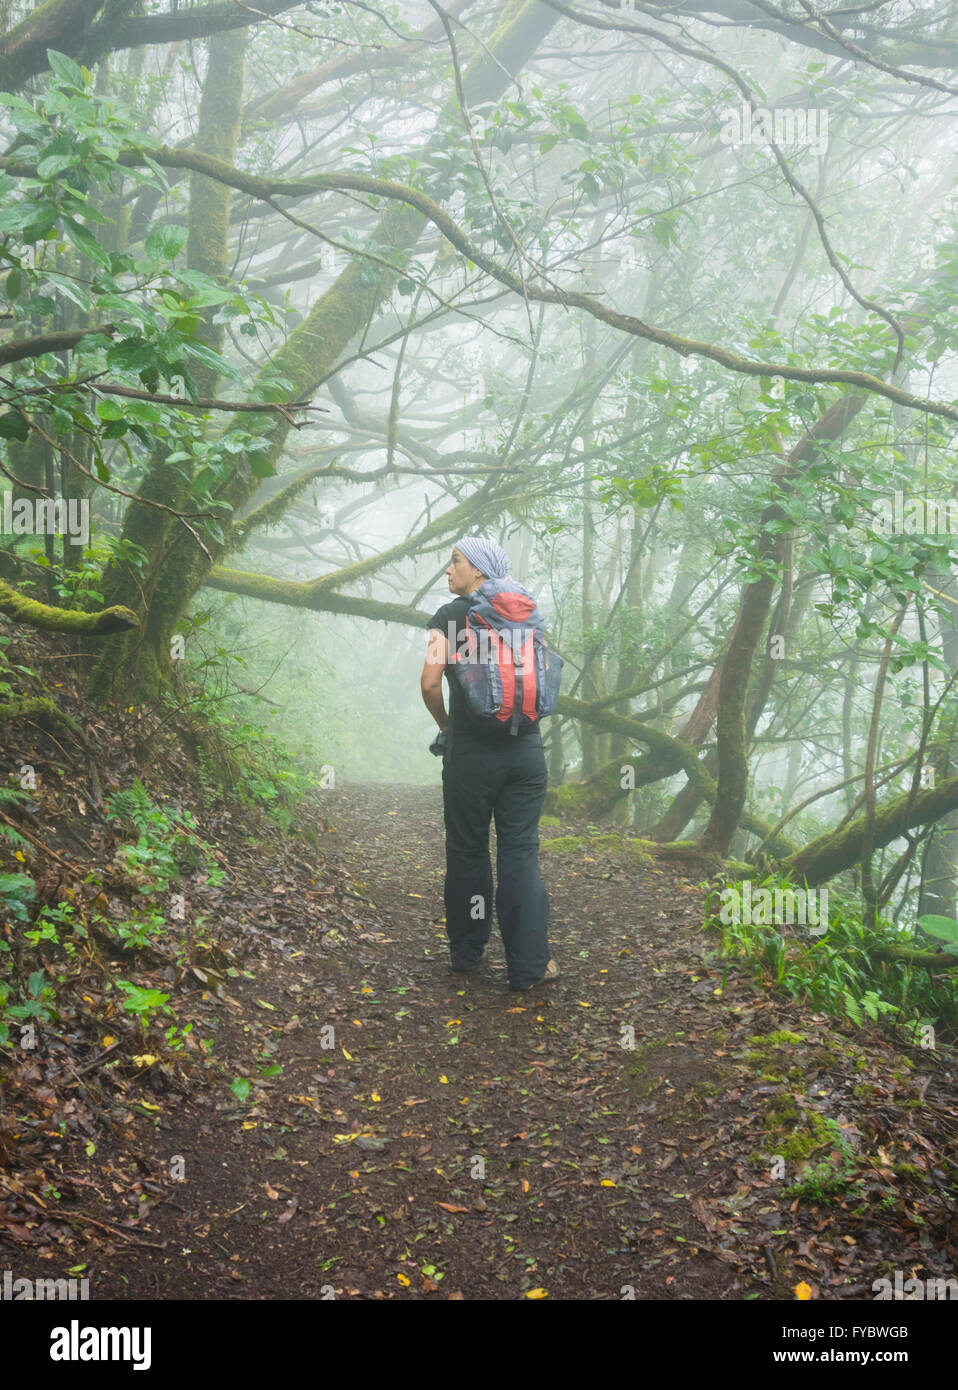 Female hiker in Laurisilva forest in Anaga Rural park on Tenerife, Canary Islands, Spain - Stock Image